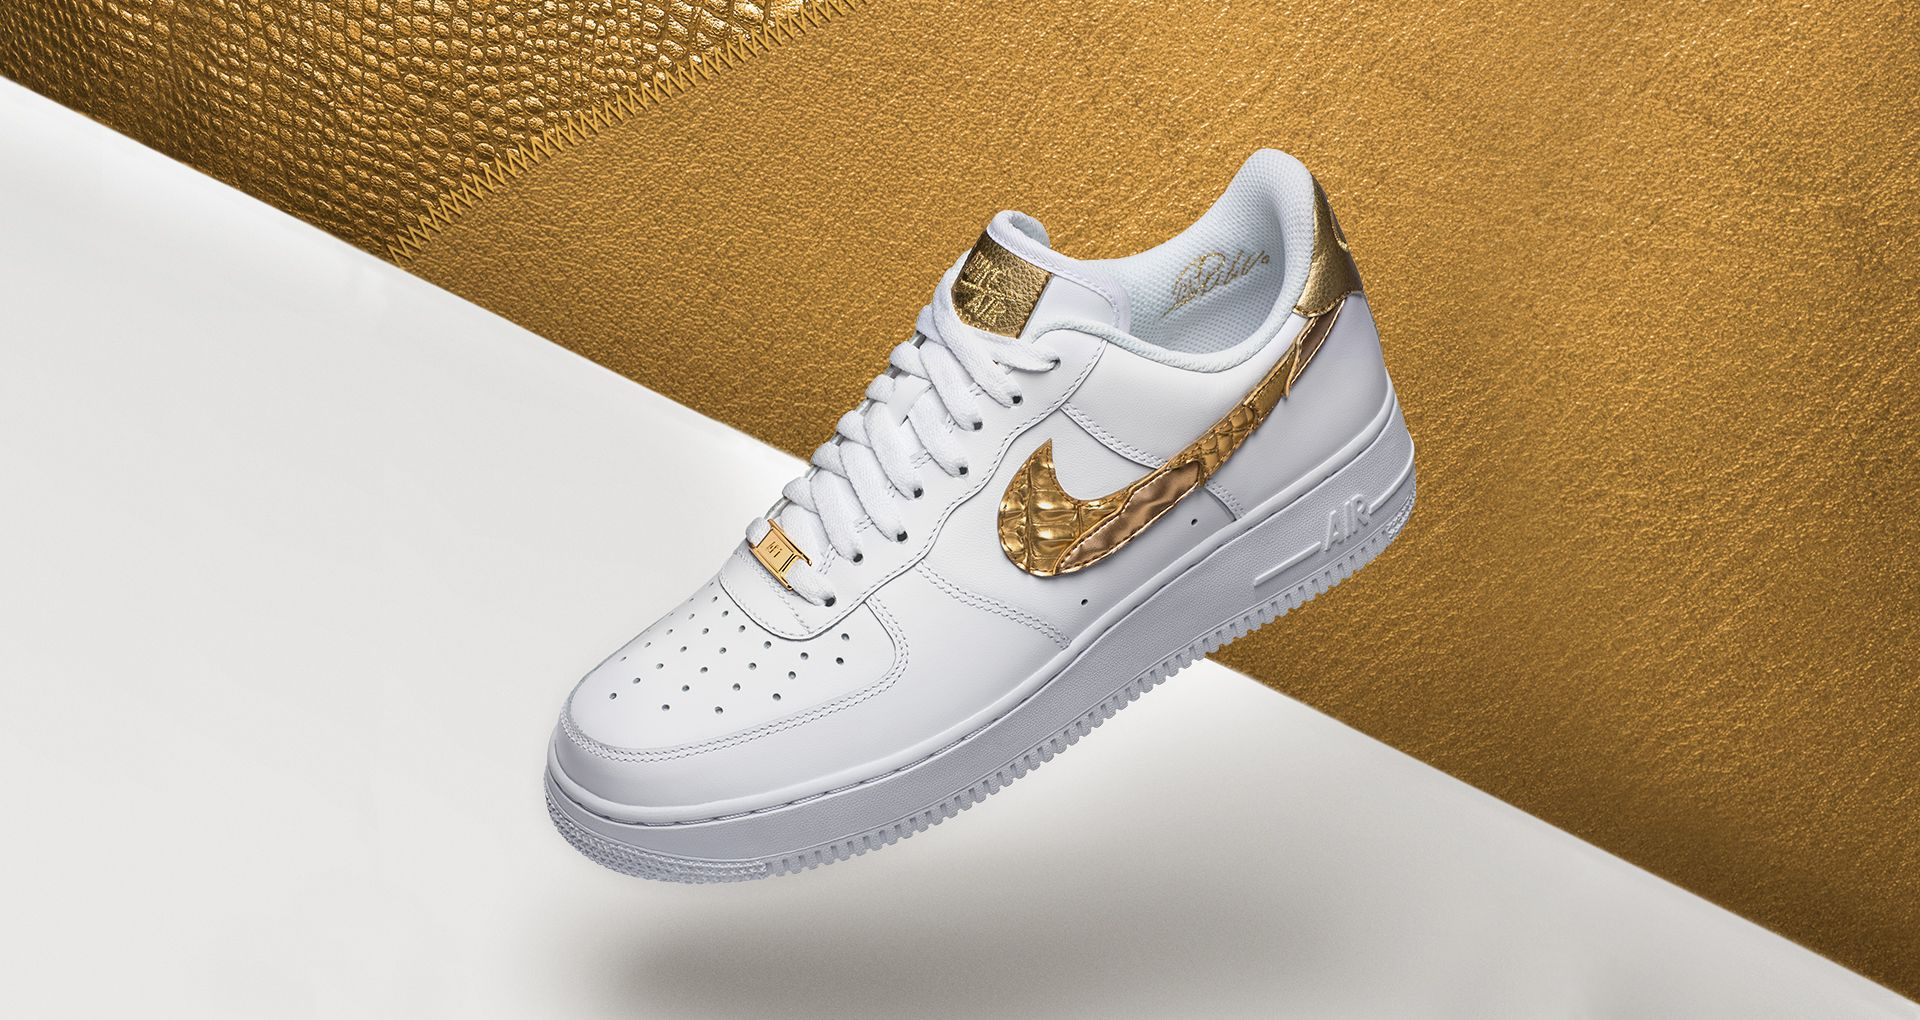 new arrival 41535 270b9 Nike Air Force 1 CR7 'Golden Patchwork' Release Date. Nike⁠+ SNKRS